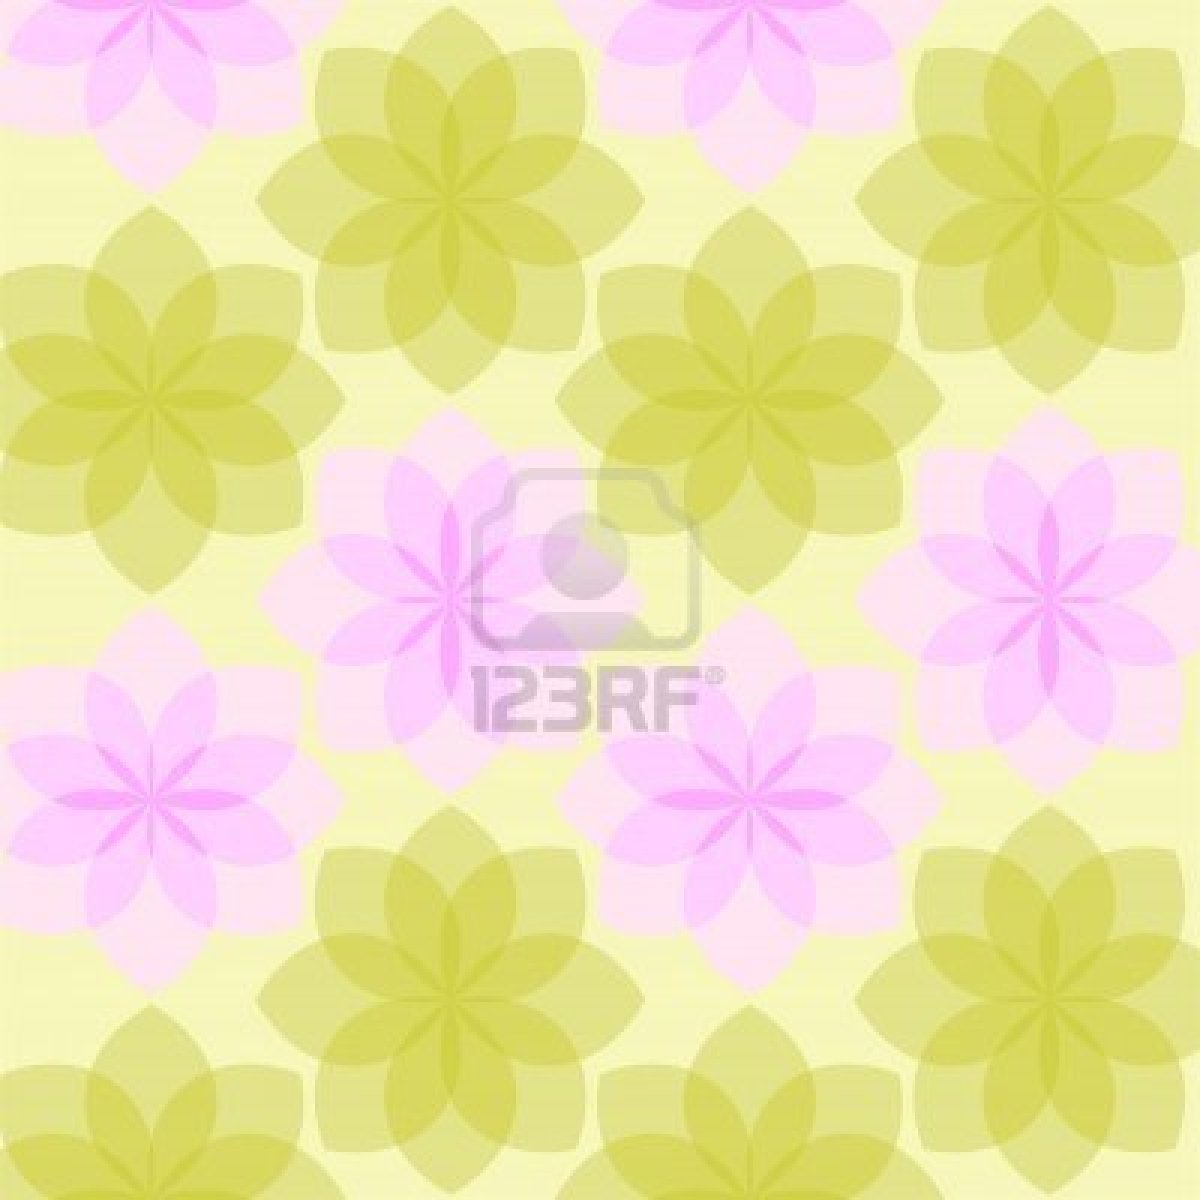 trololo blogg The Yellow Wallpaper Quotes Marriage 1200x1200